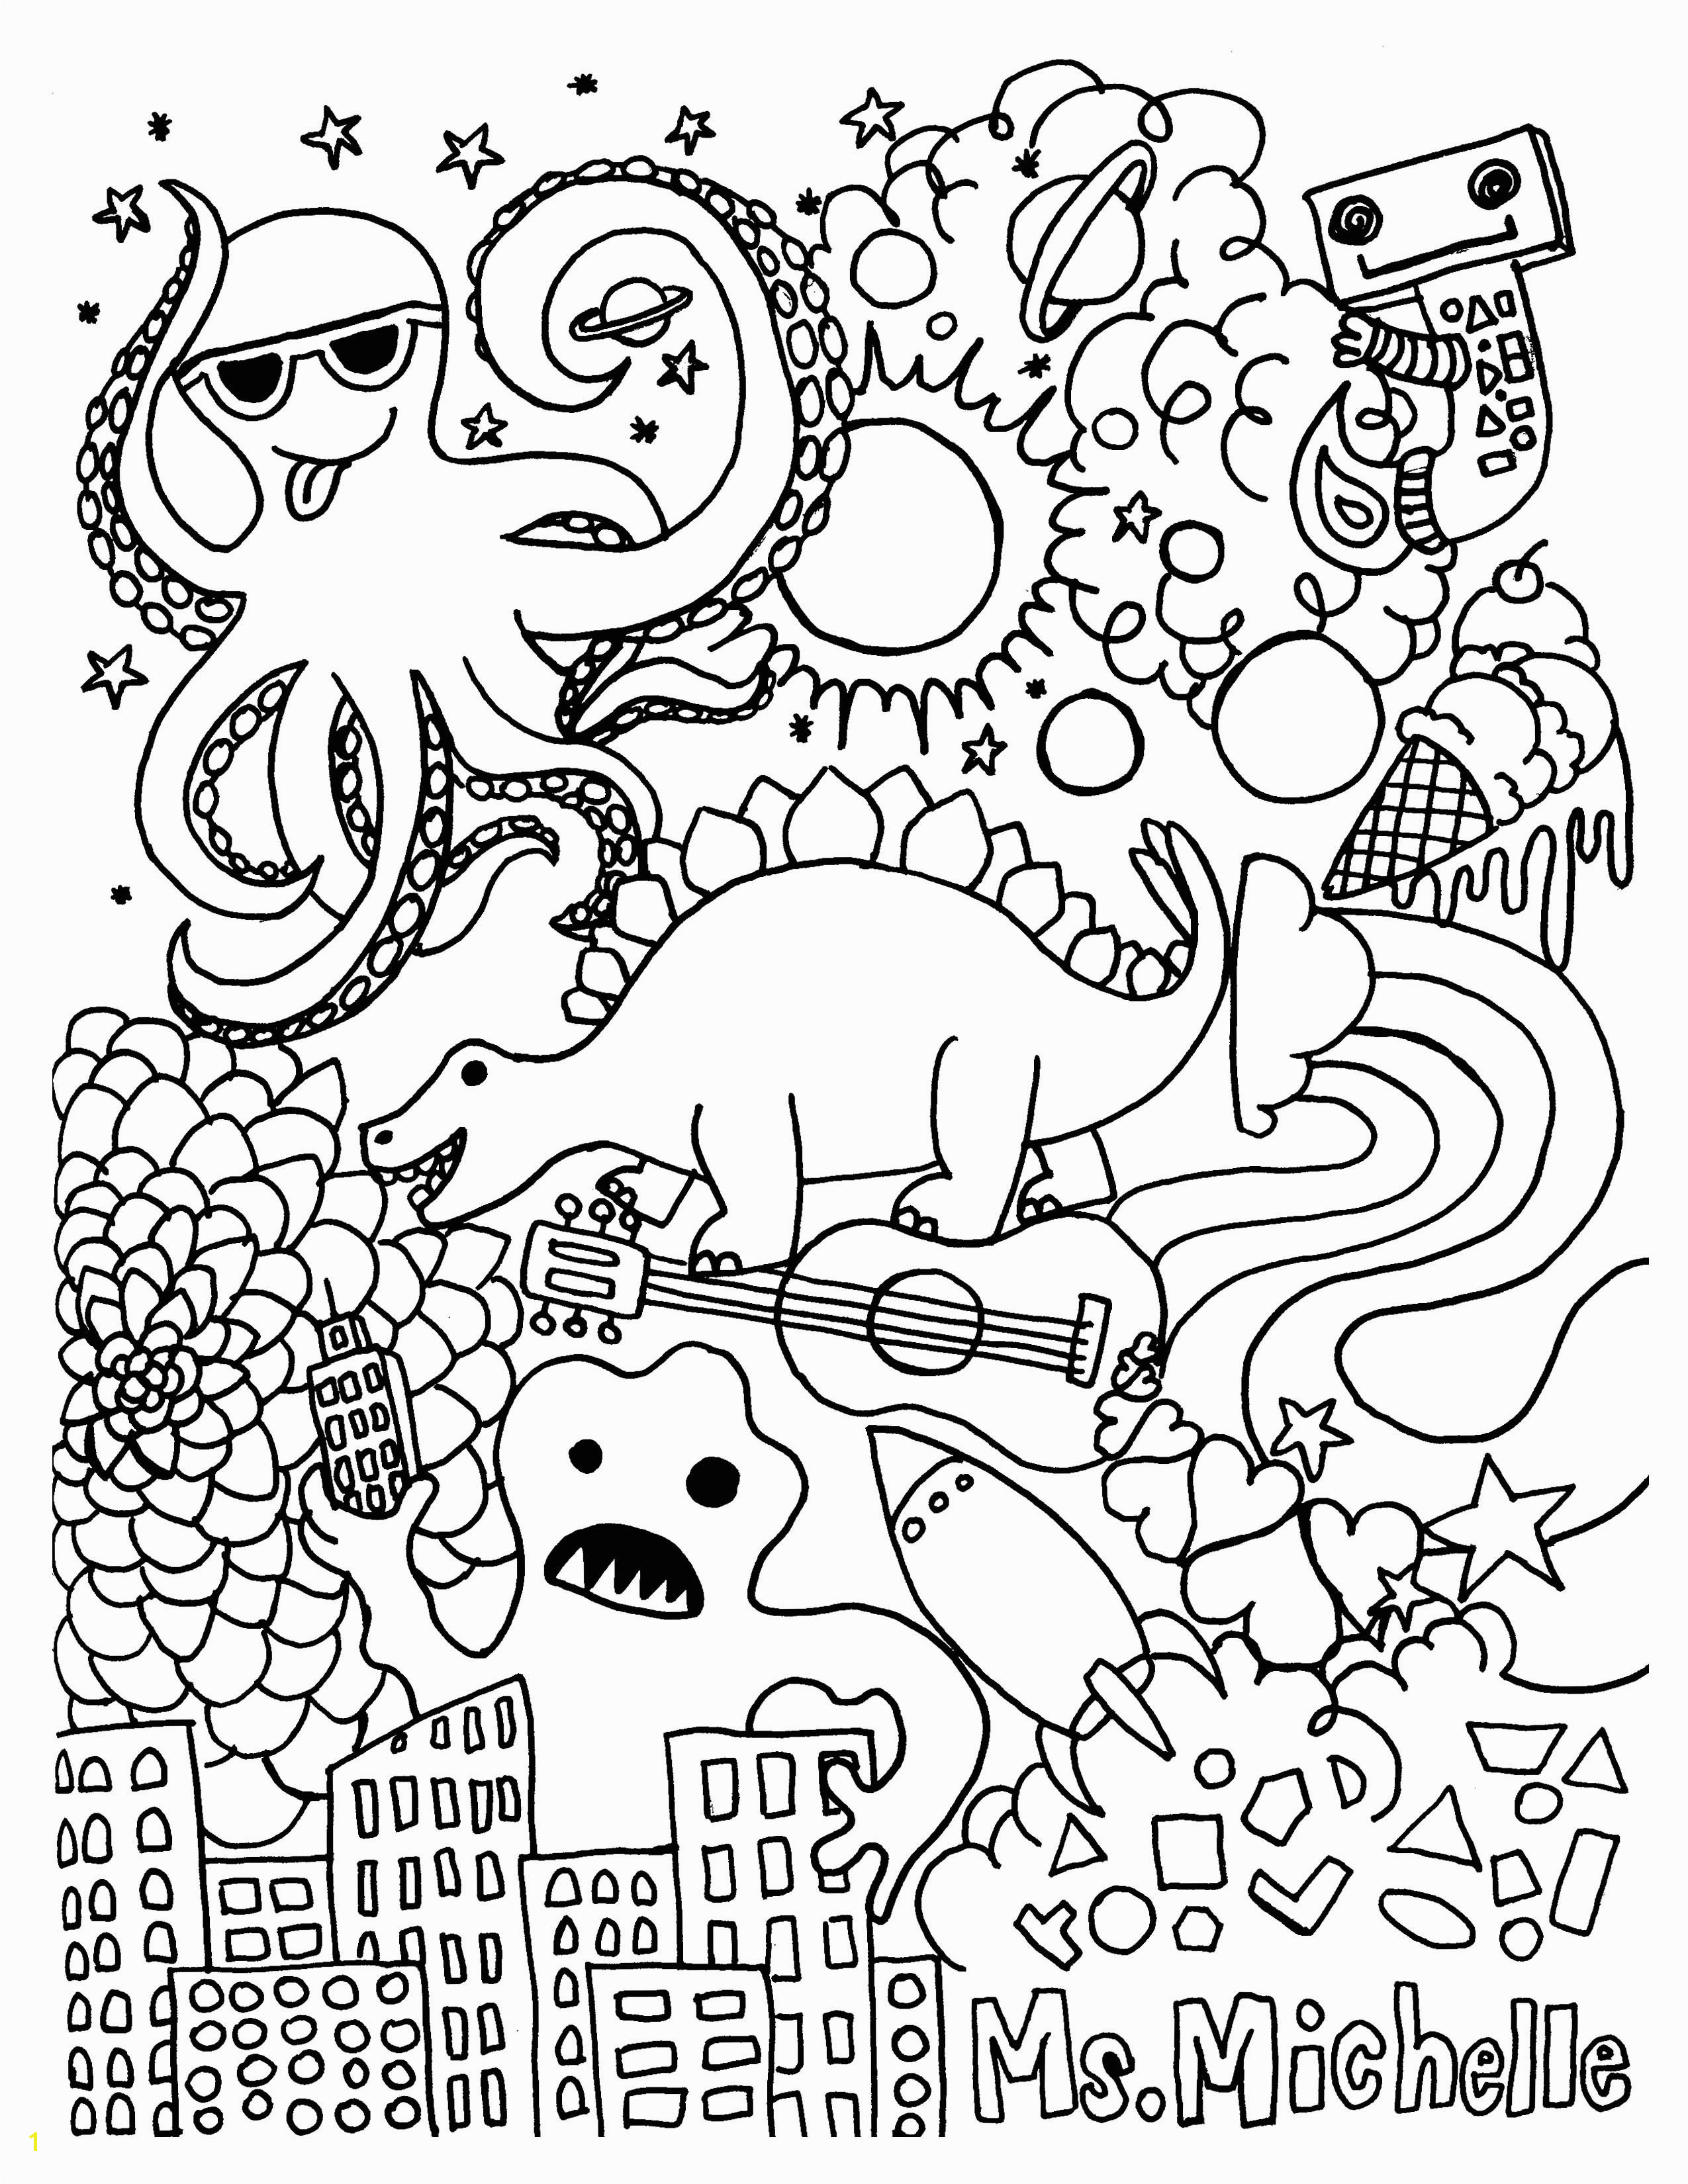 free printable coloring pages for 2 year olds Coloring Books for 2 Year Olds Fresh